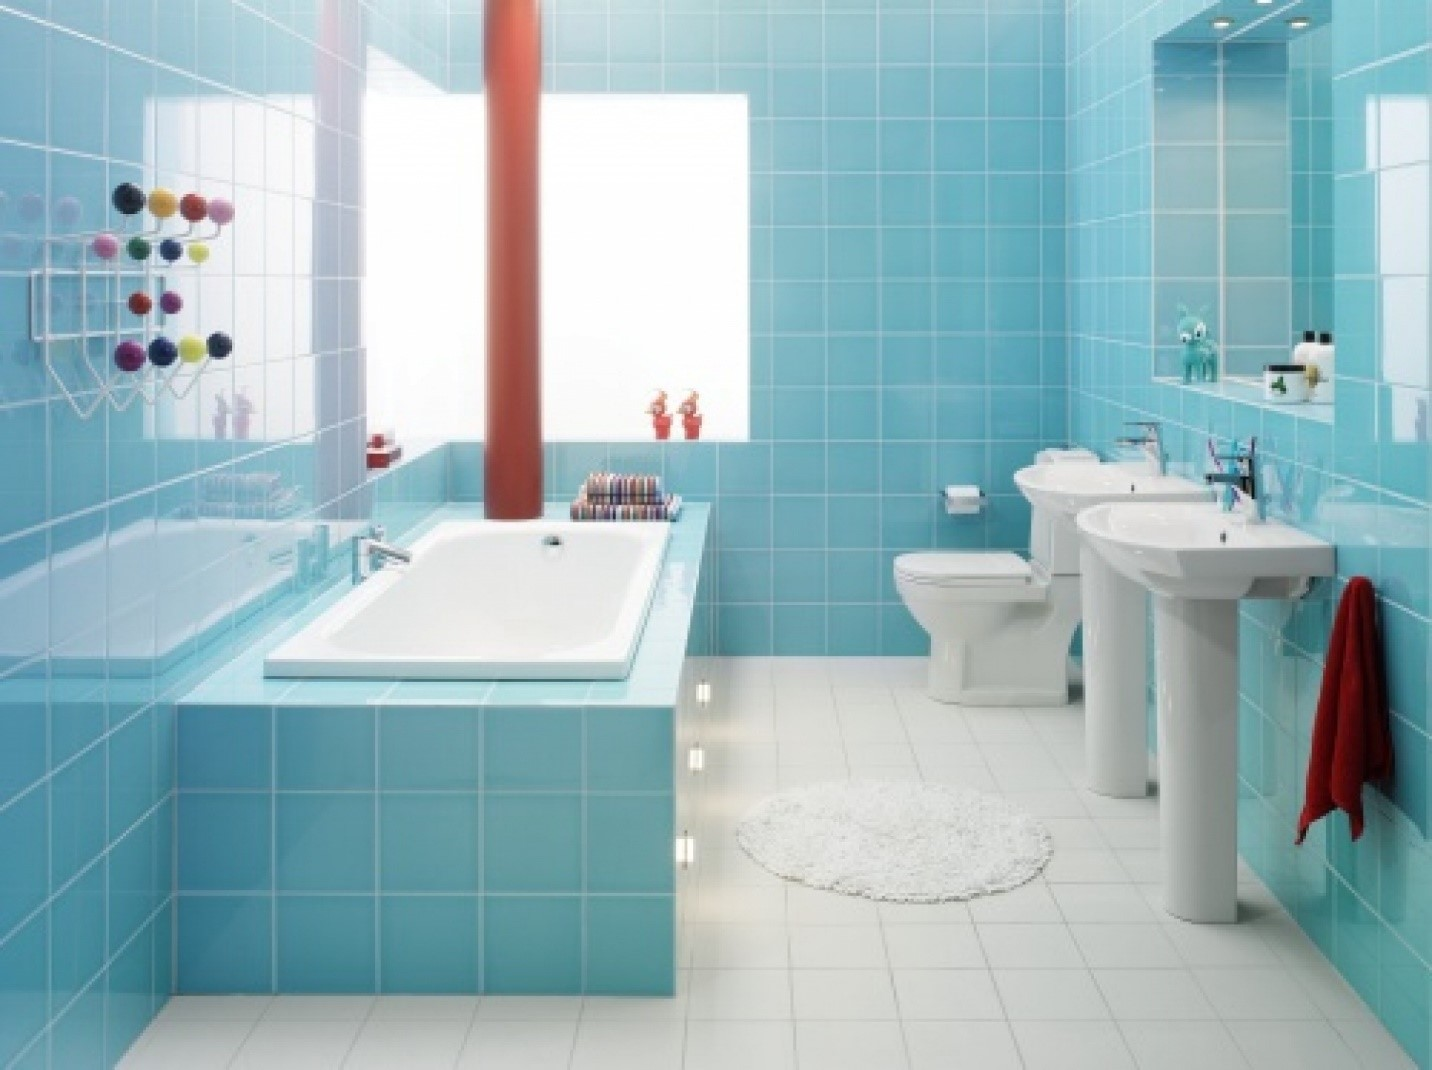 Cleaning Bathroom Tiles to Perfection for Festive Season |